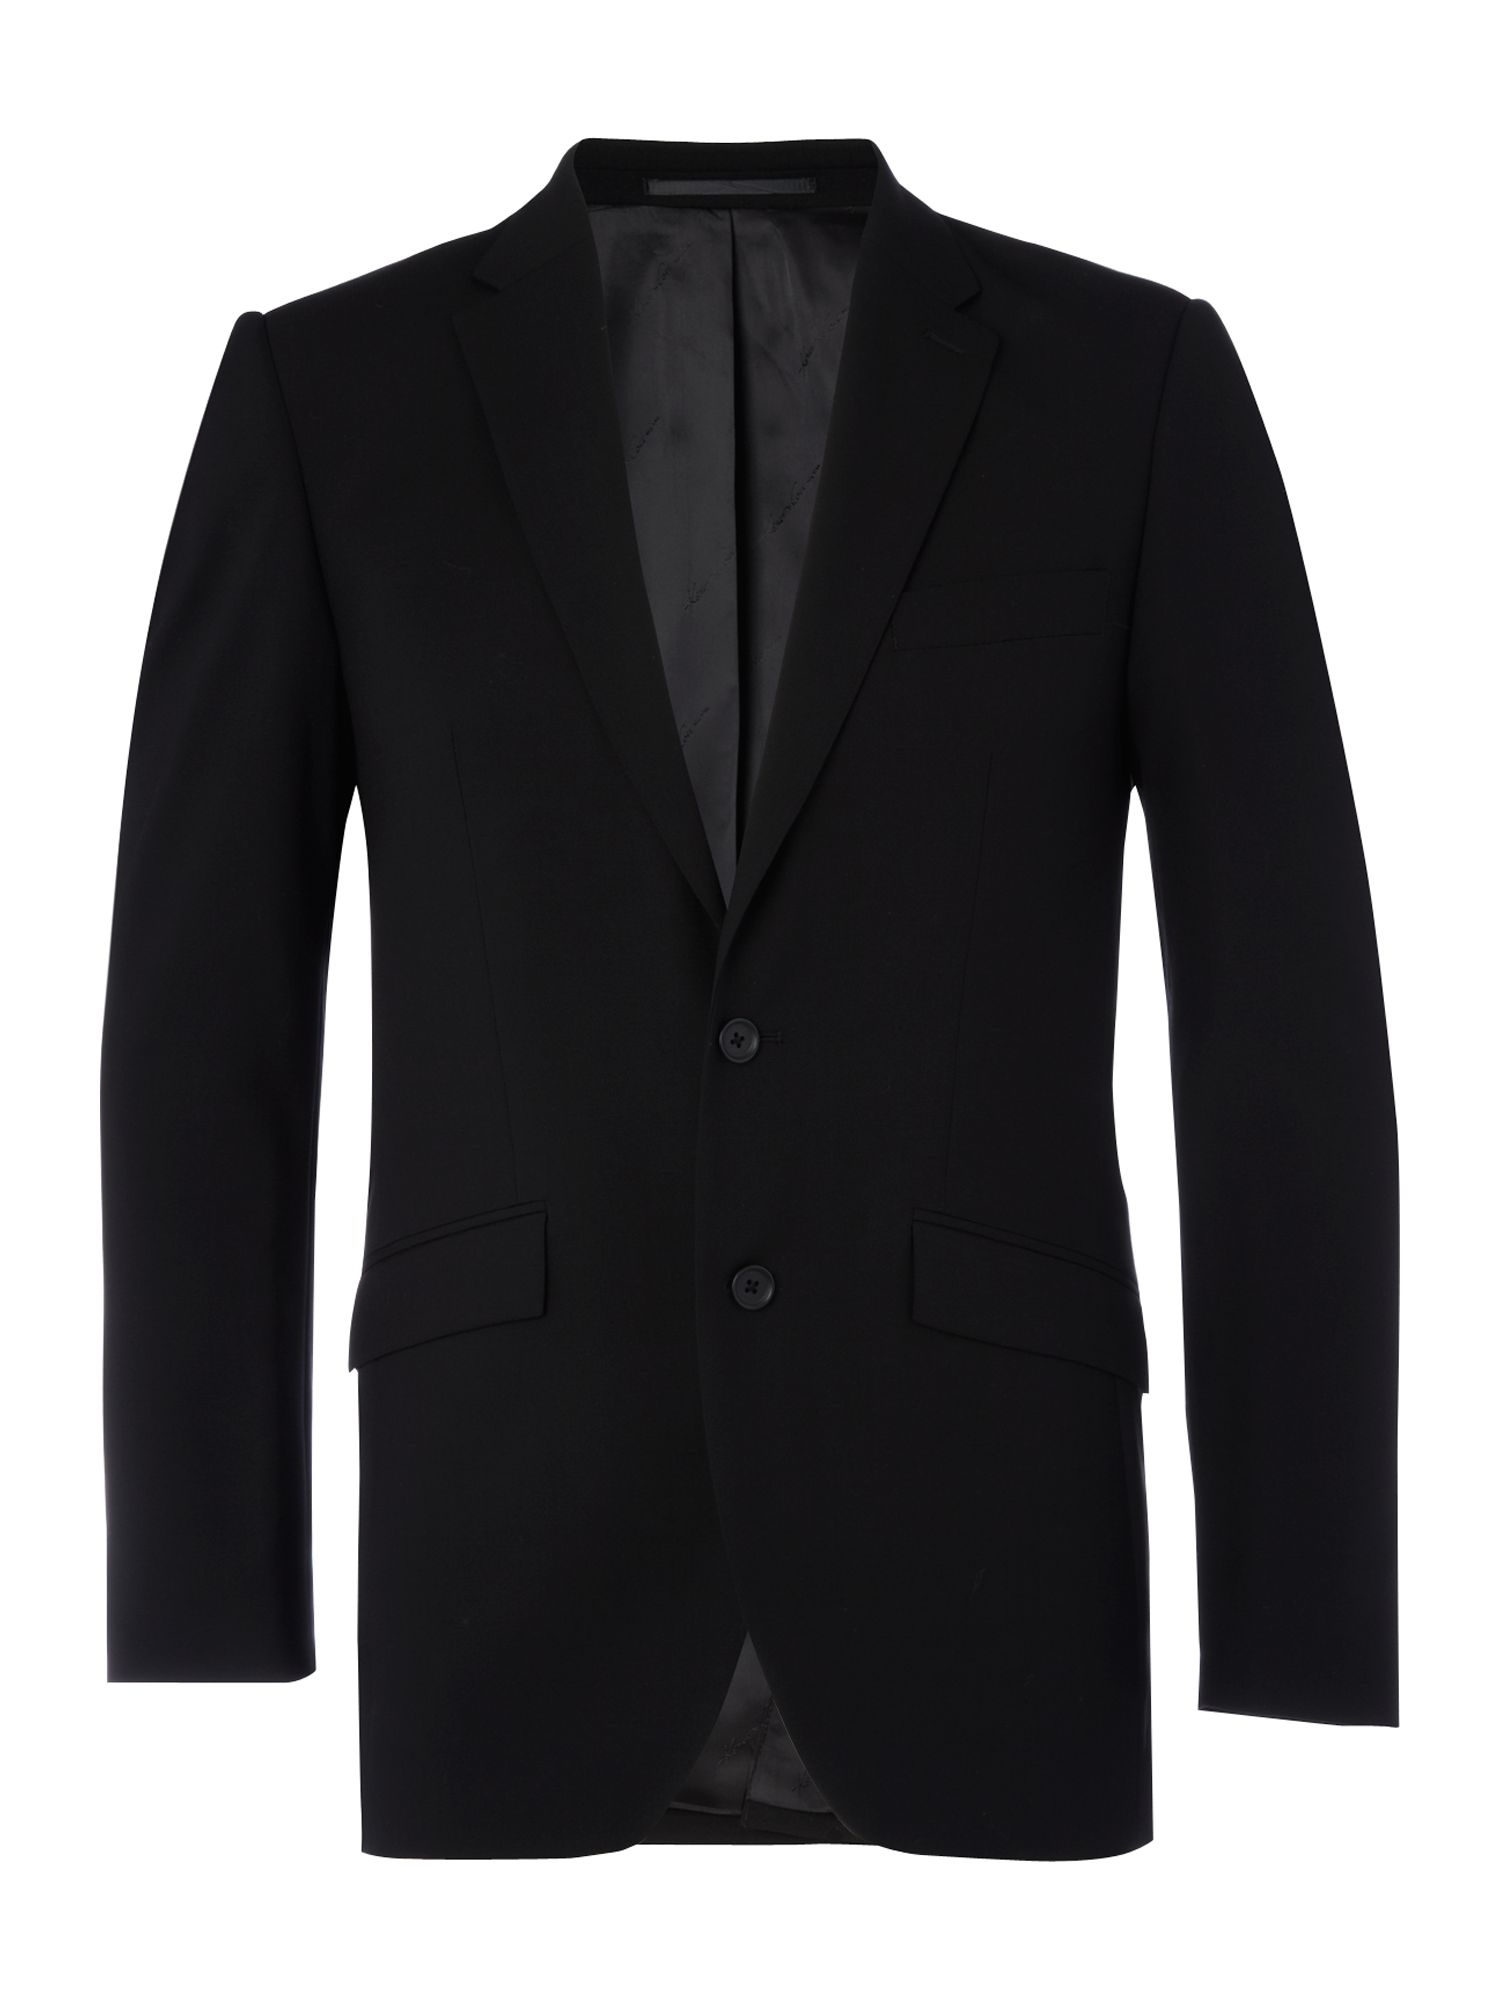 Ultra black three piece suit jacket